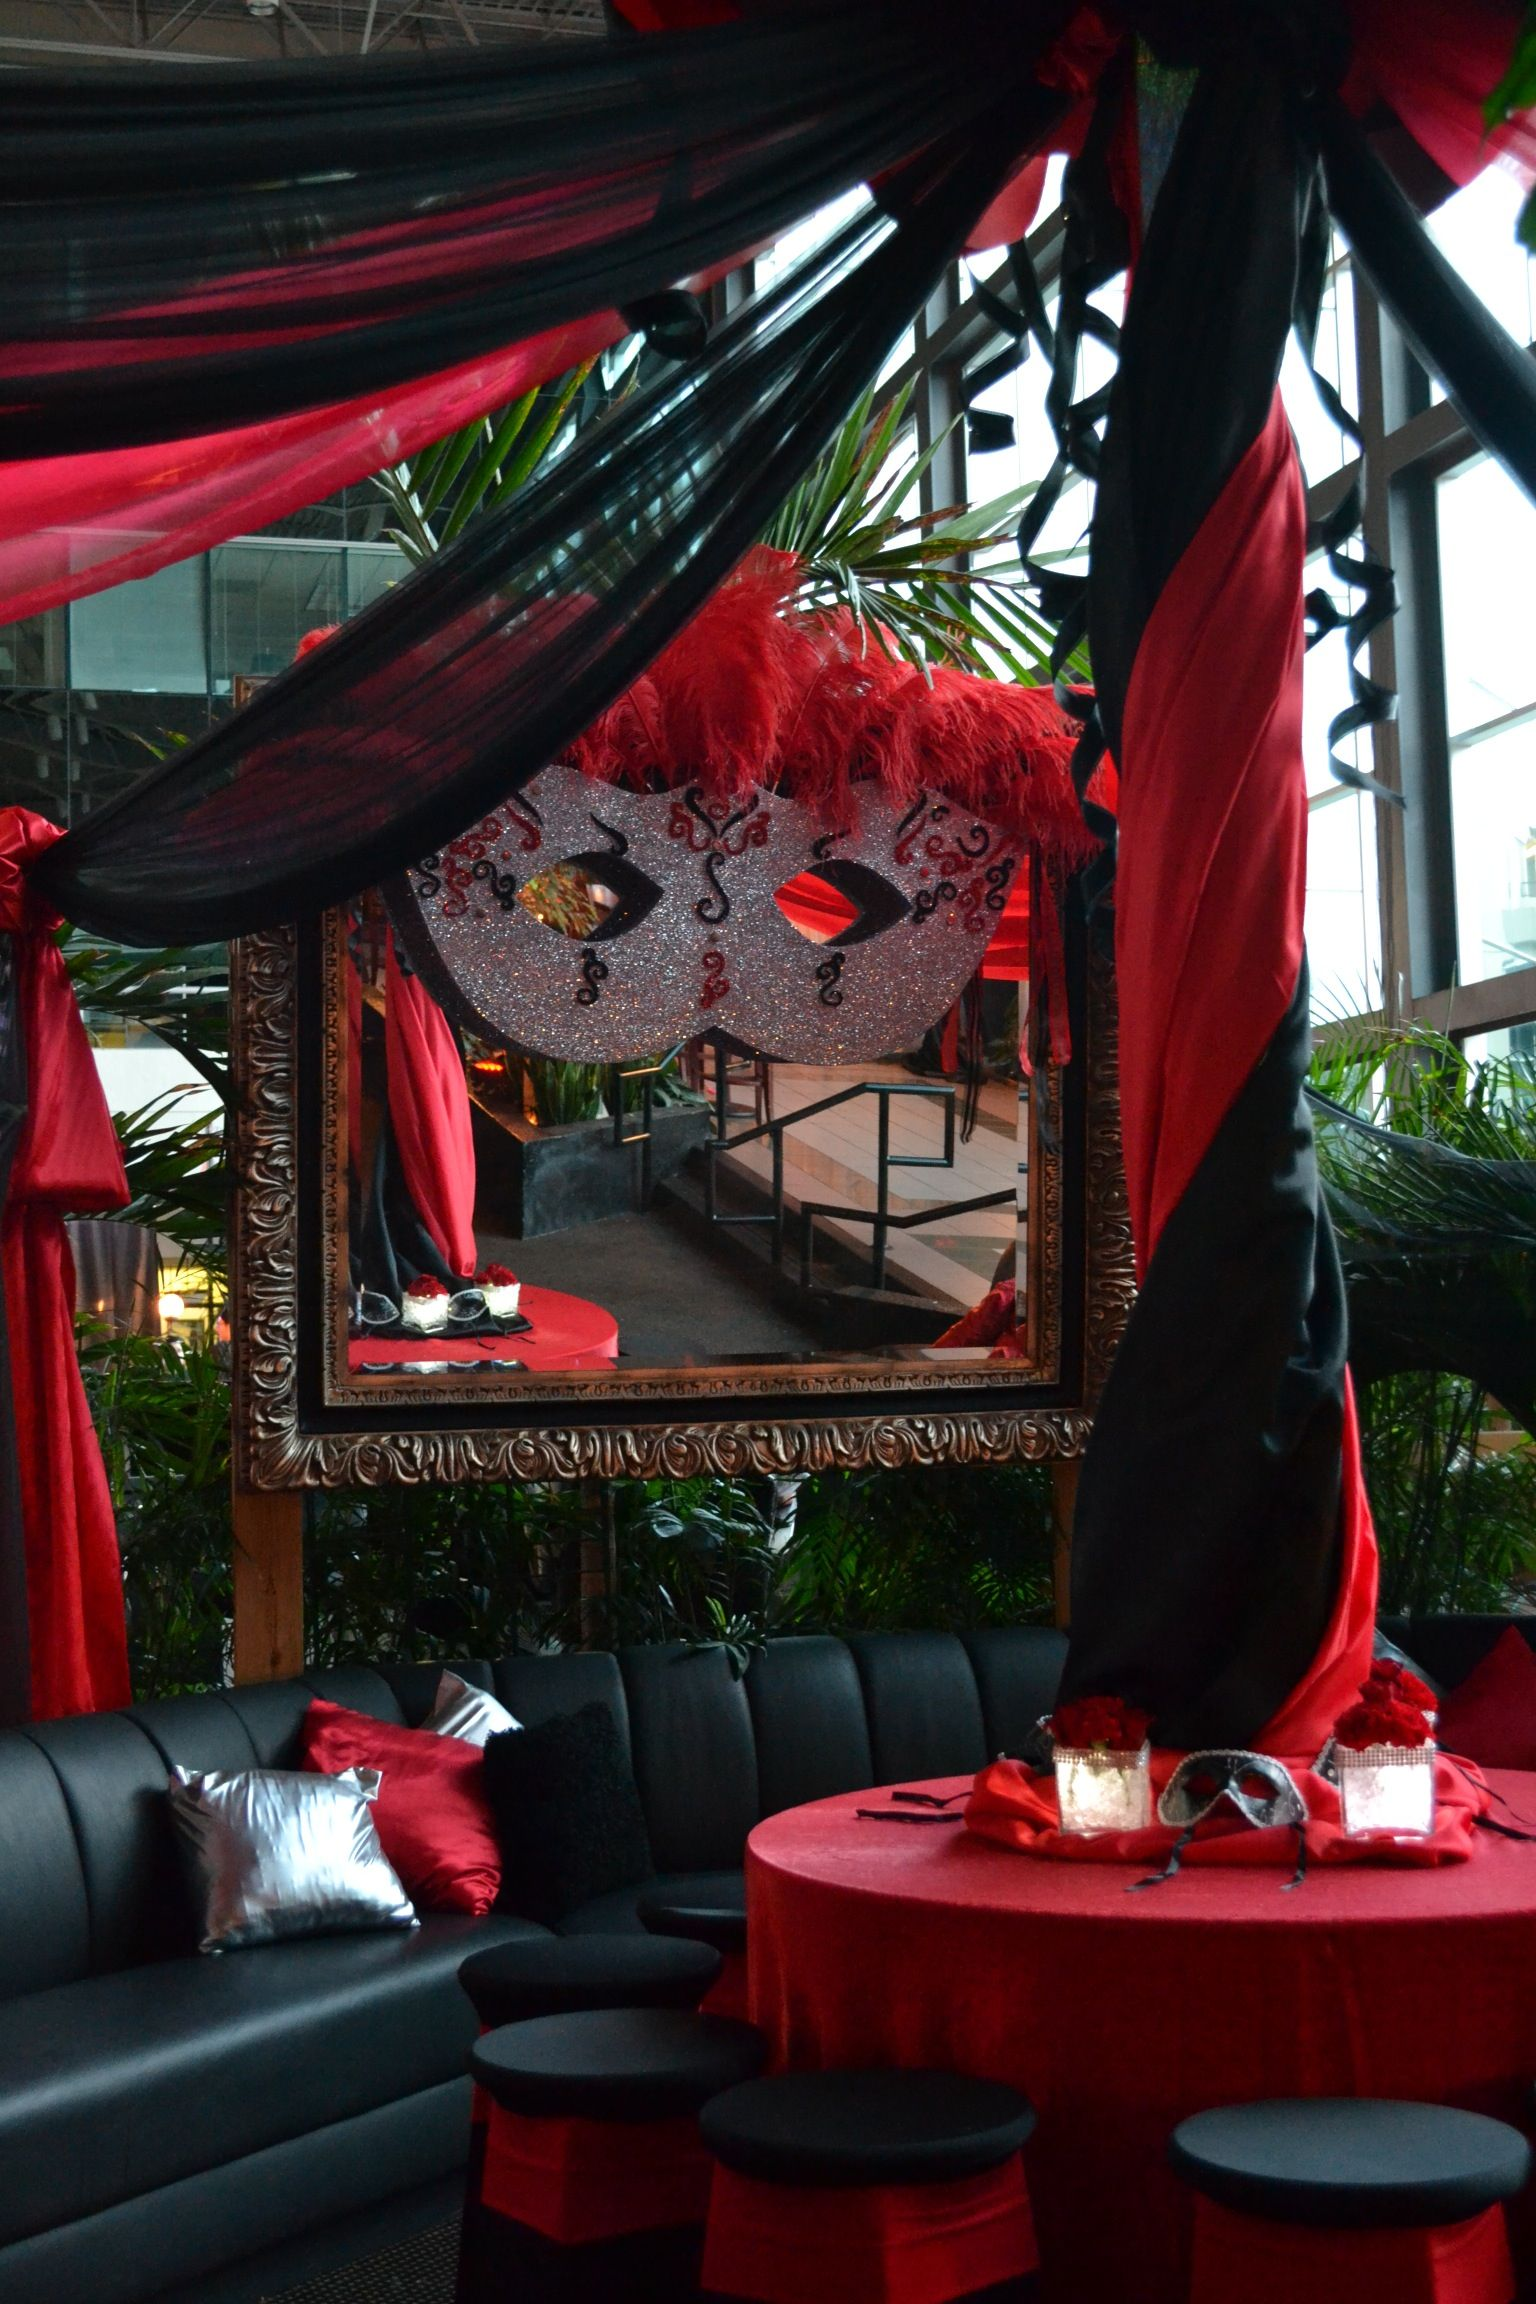 red and black decor at a masquerade ball/party http://www